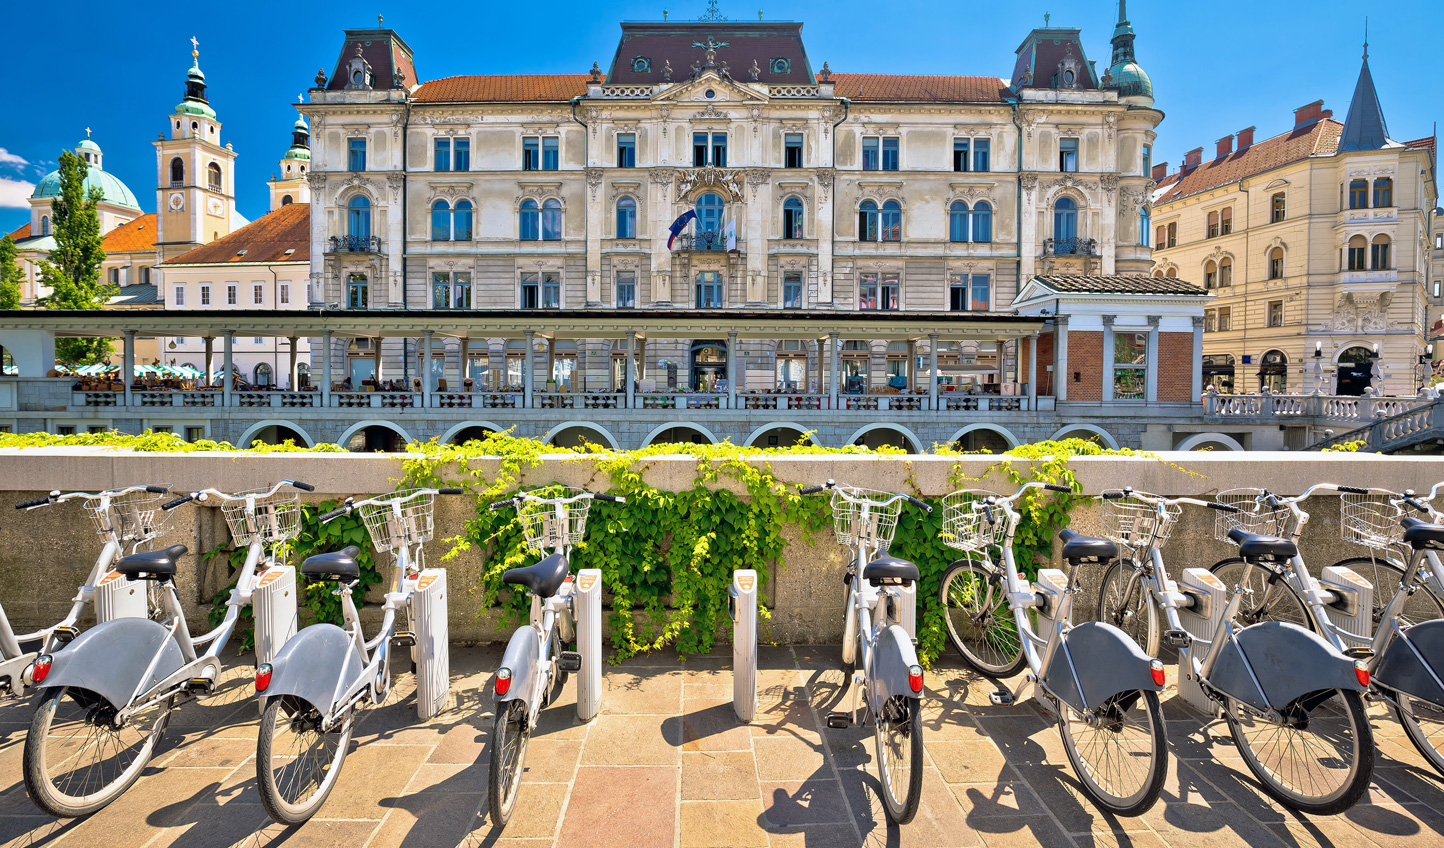 Hop on a bicycle and take in the sights of Ljubljana